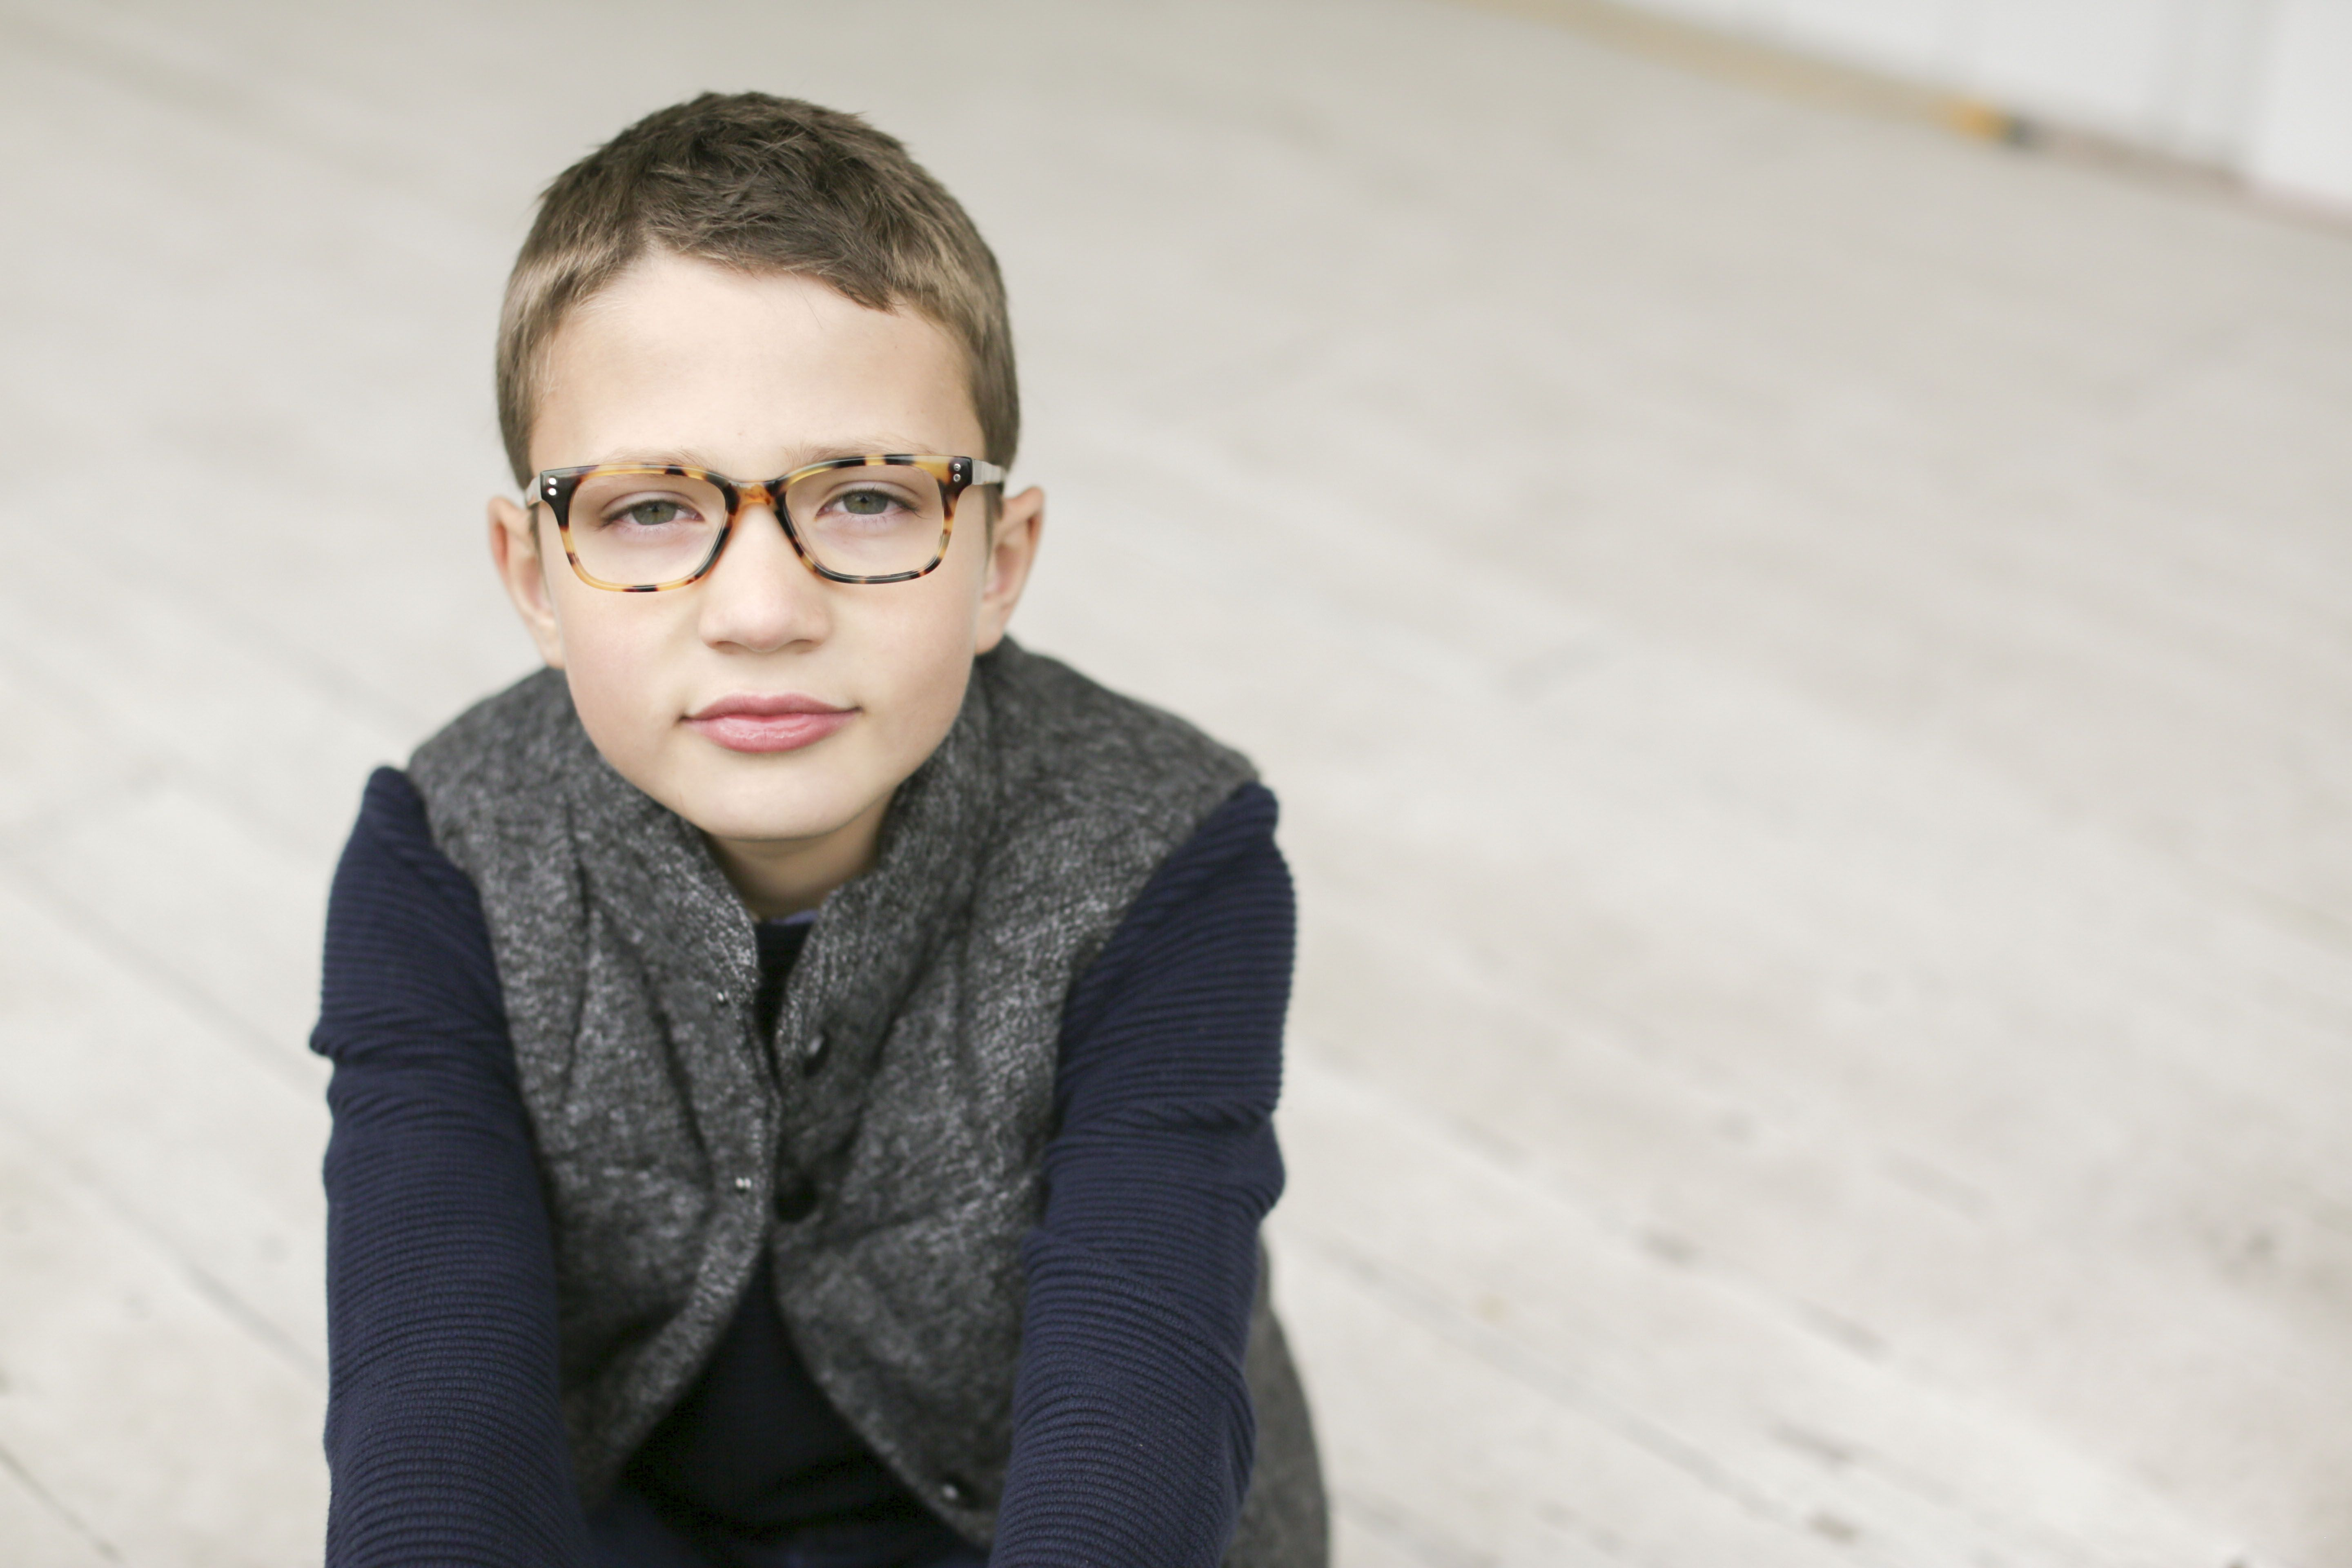 34116f3f4ea6 Fashionable eyewear for boys. Our Edward square boys glasses frames are  offered in classic and contemporary limited edition color options to  coordinate with ...